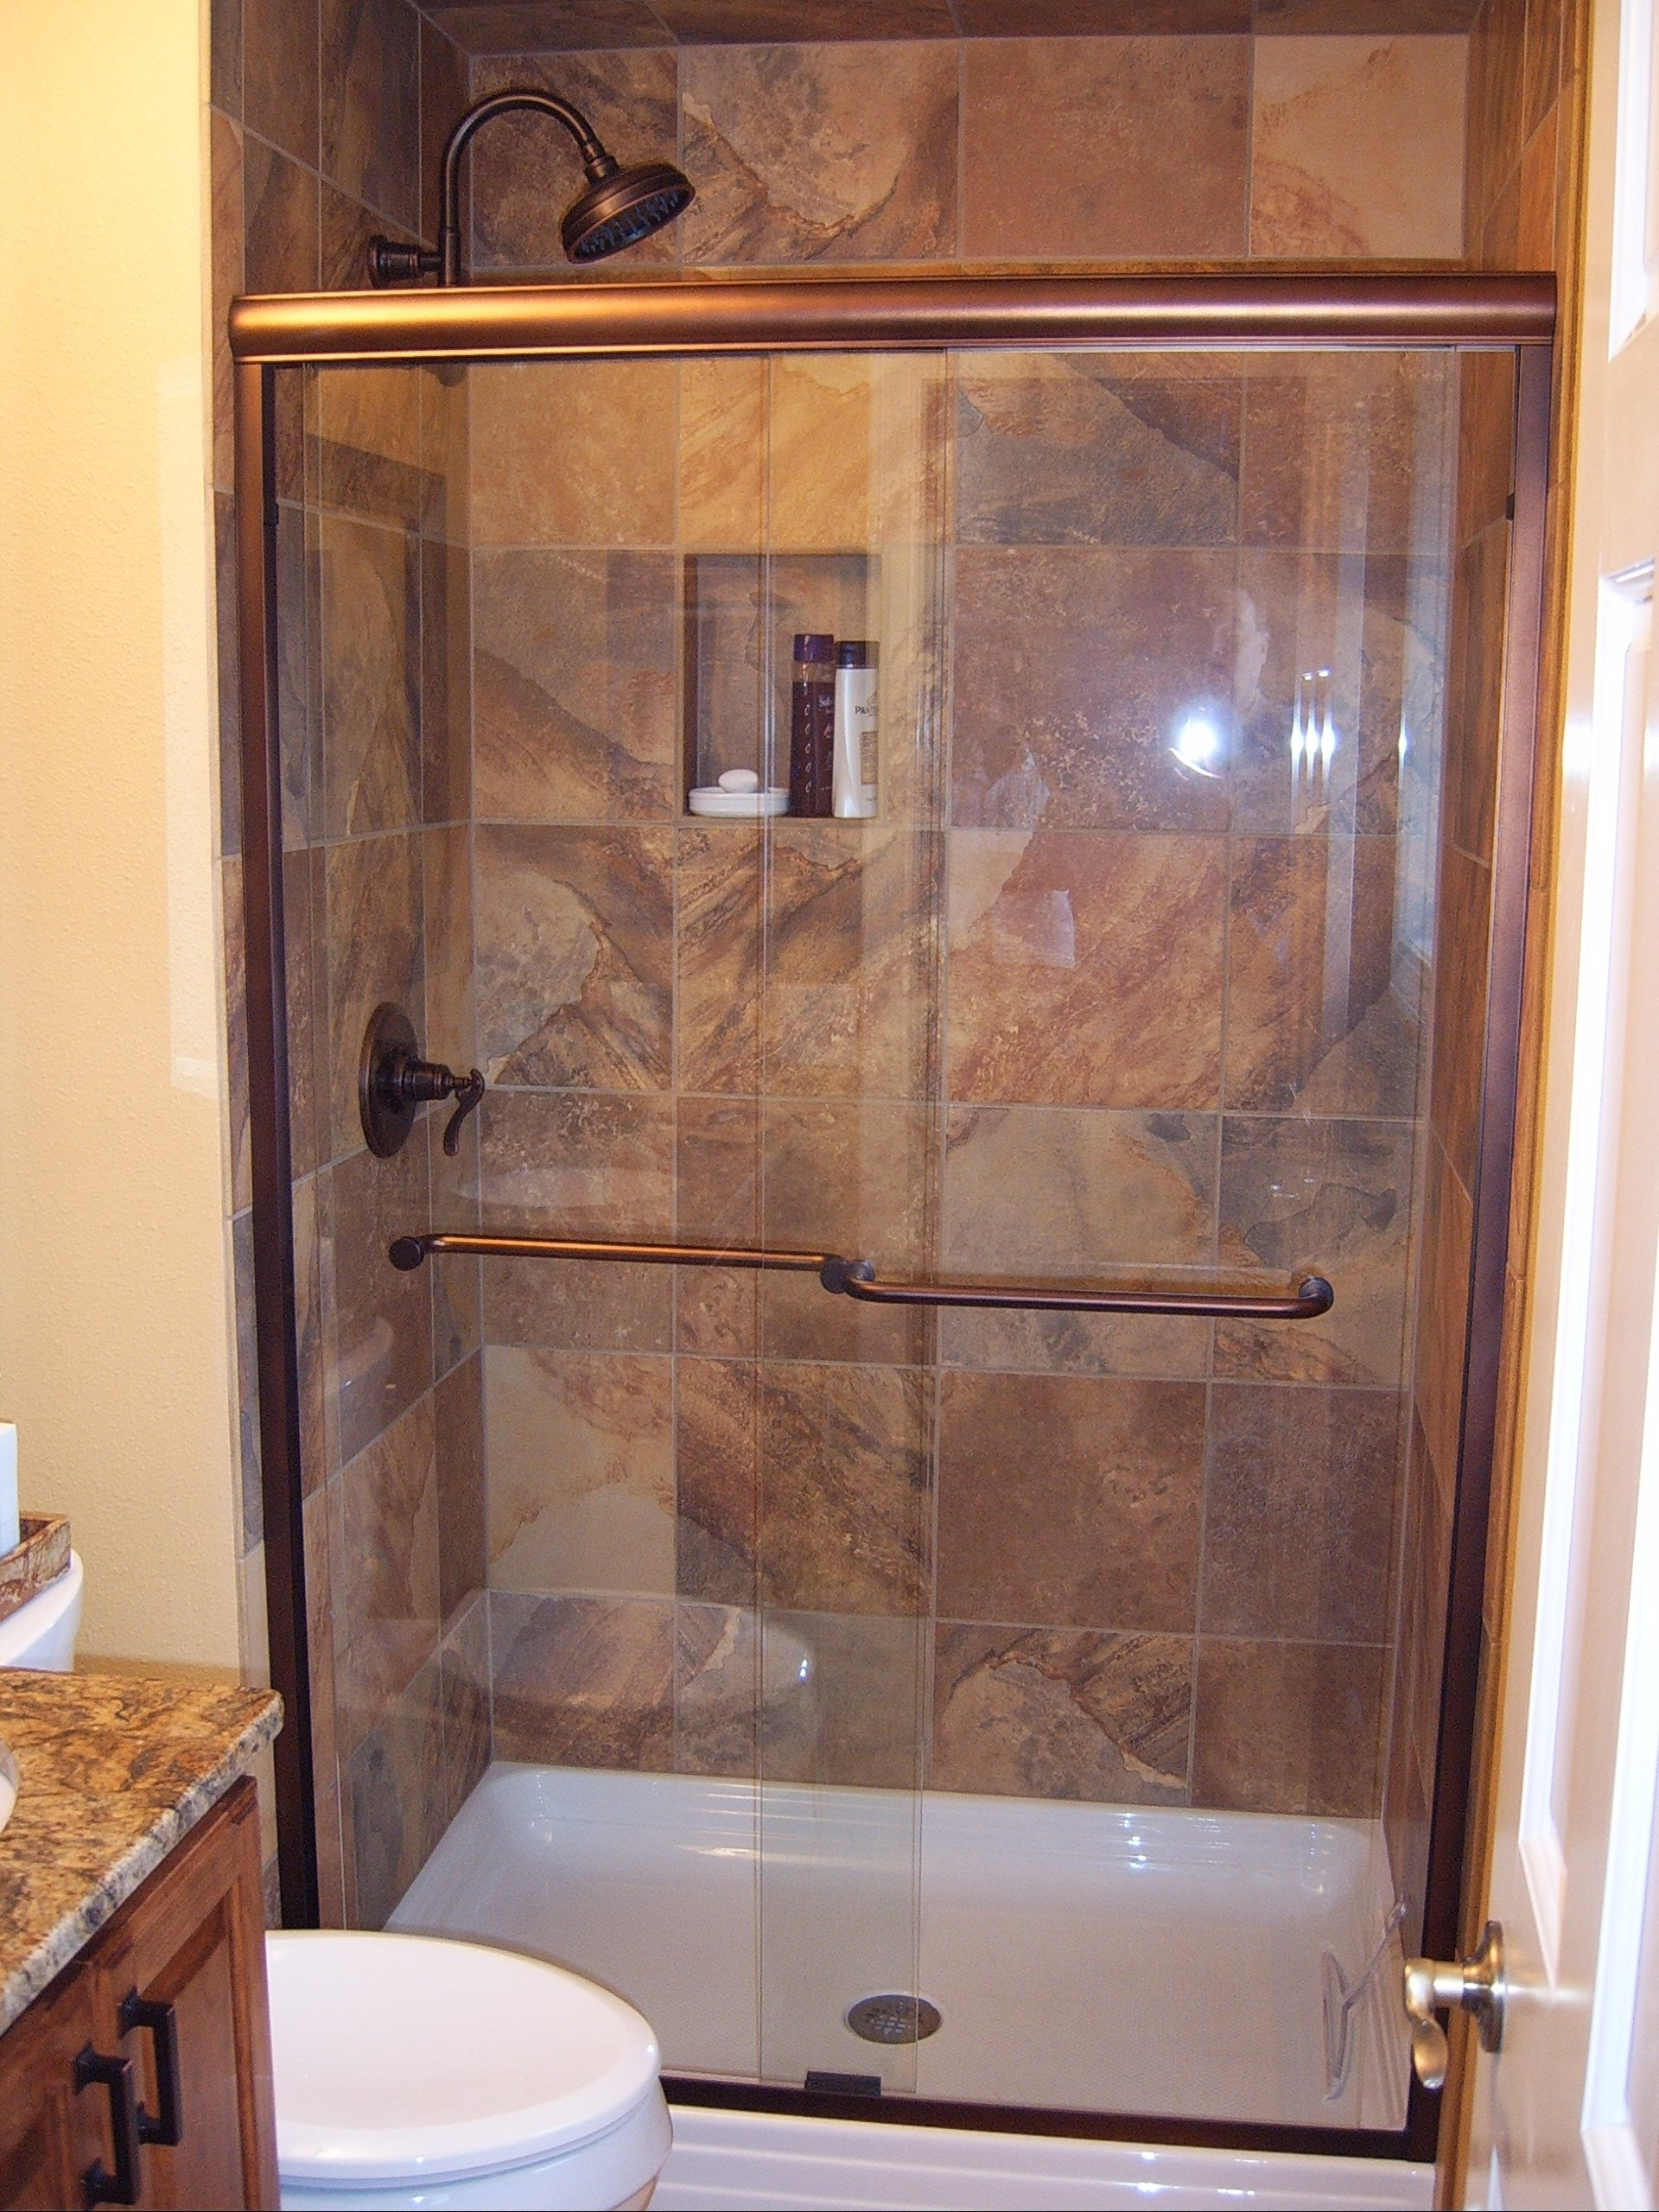 10 Nice Remodeling Bathroom Ideas For Small Bathrooms amazing of beautiful incridible small bath remodeling pic 3407 2020